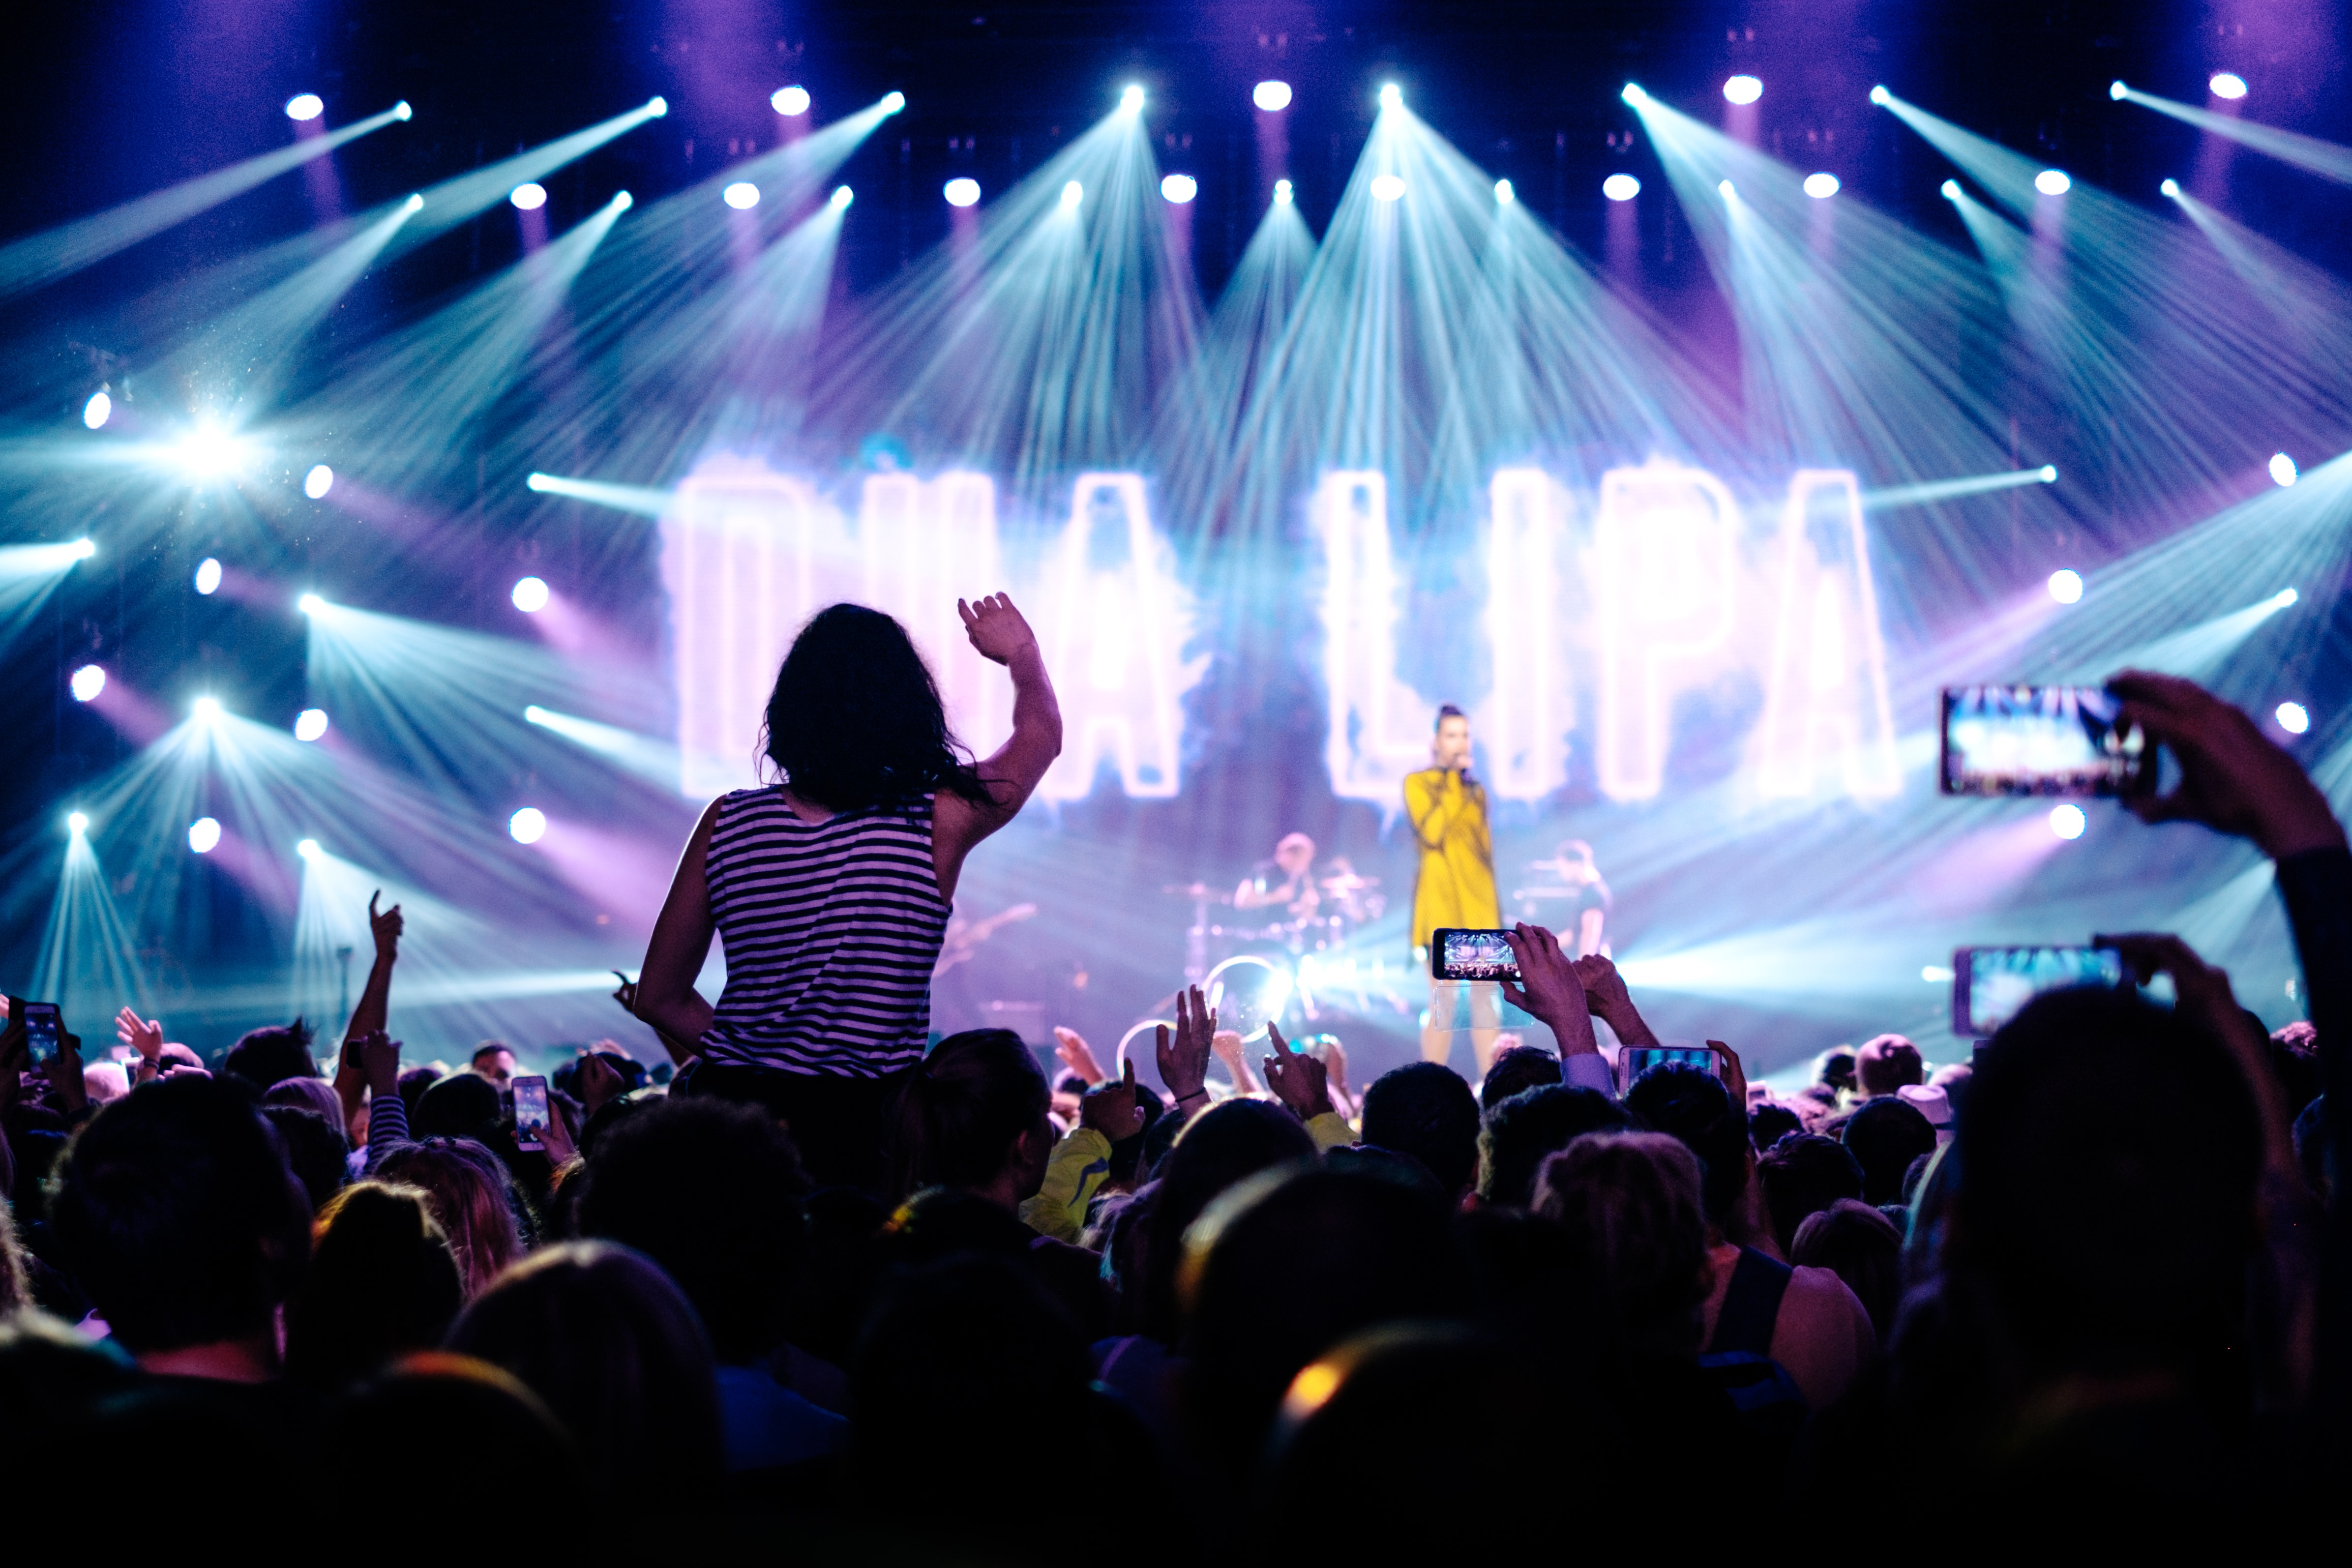 Concert audience lifting up their hands and phones as a woman in a yellow dress performs on stage